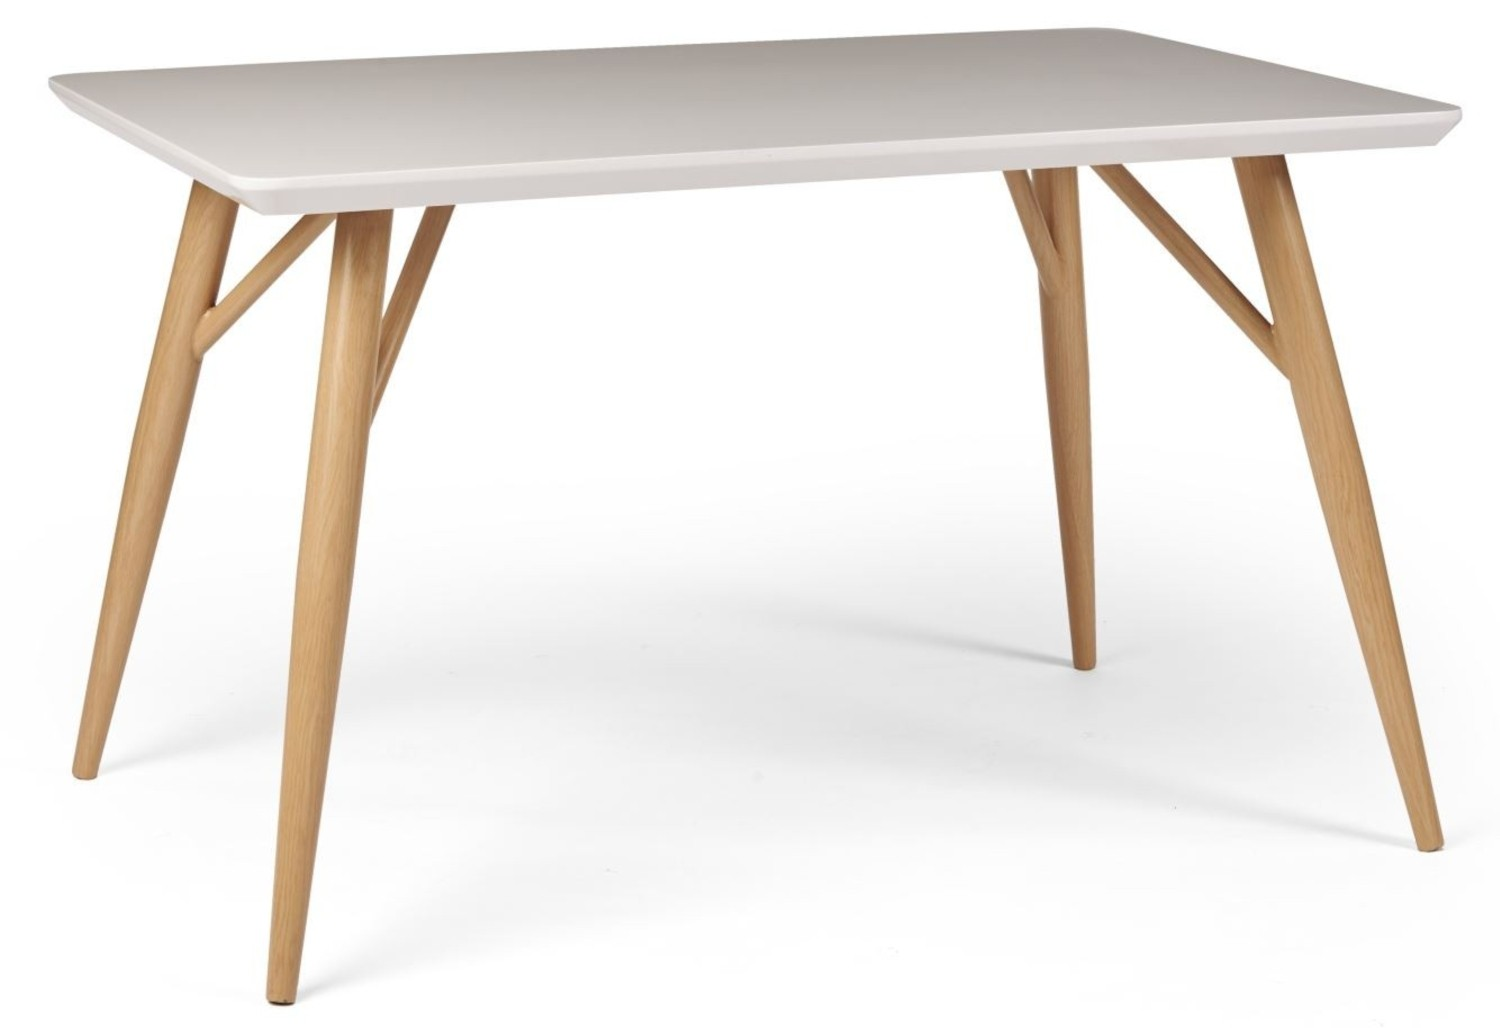 CONTEMPORARY Rectangular Dining Table - White